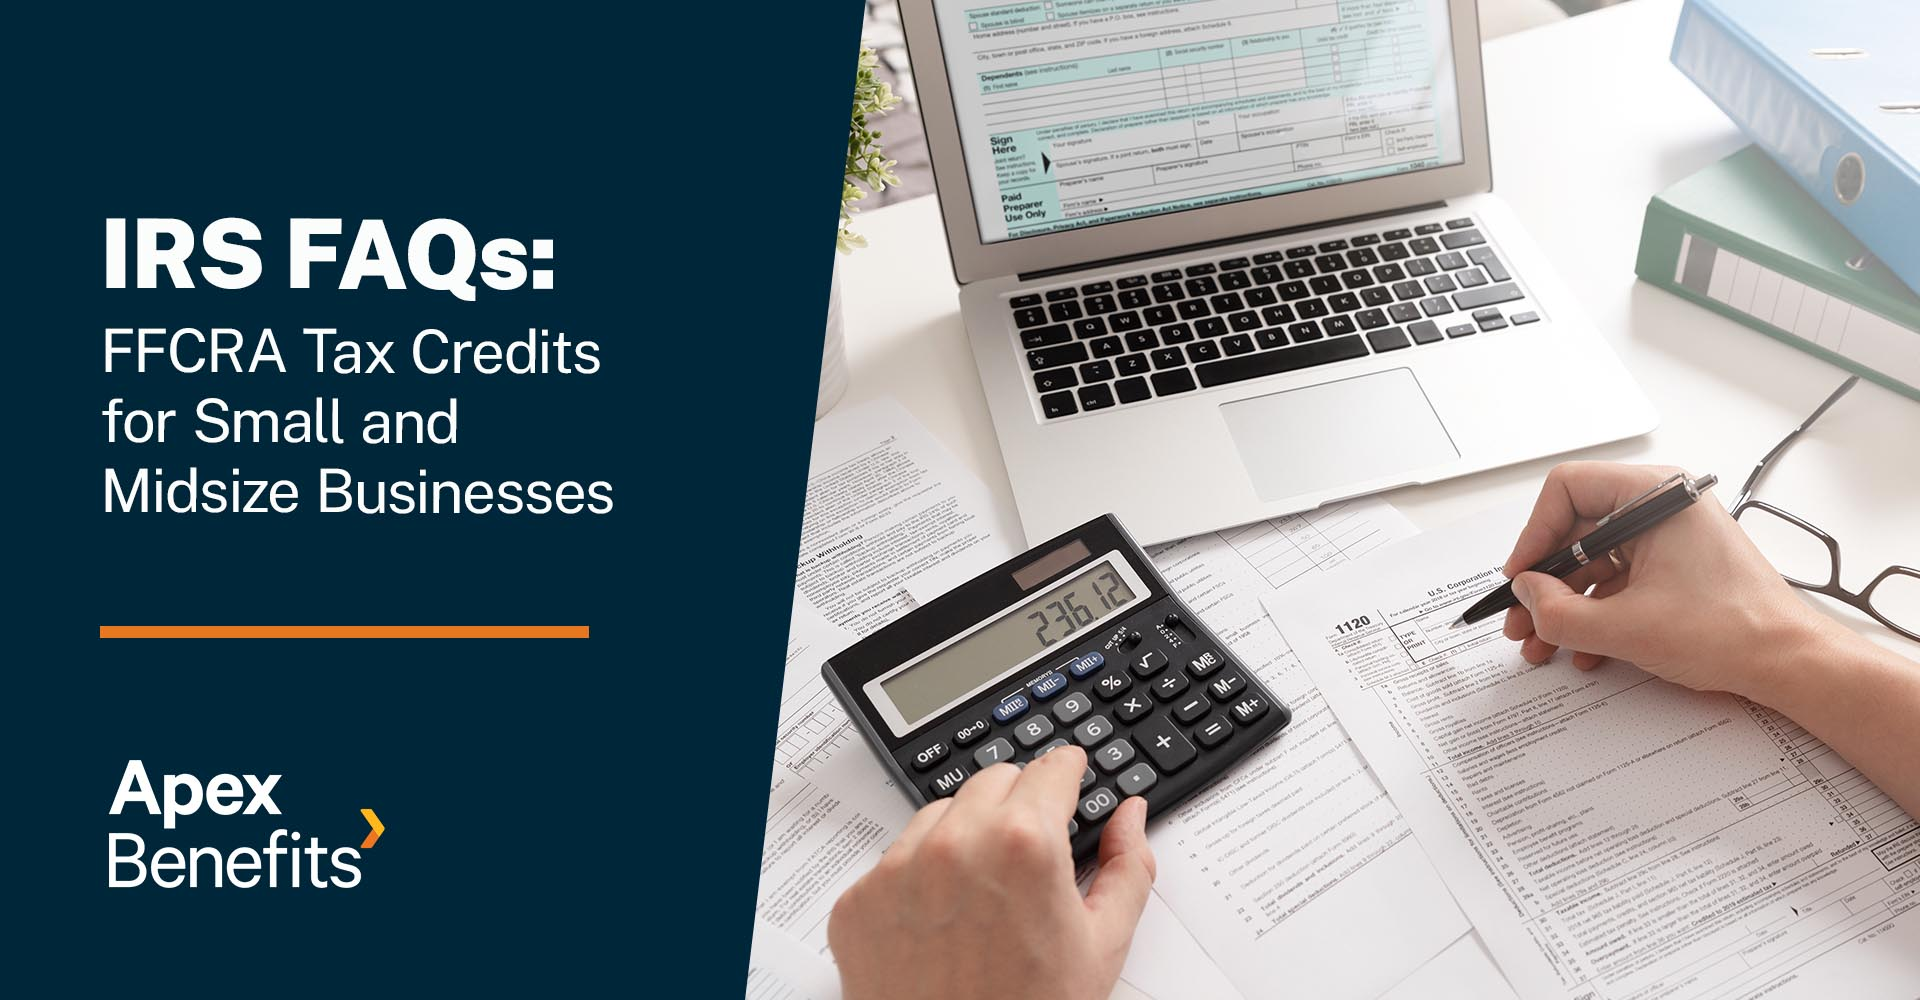 IRS FAQs: FFCRA Tax Credits for Small and Midsize Businesses